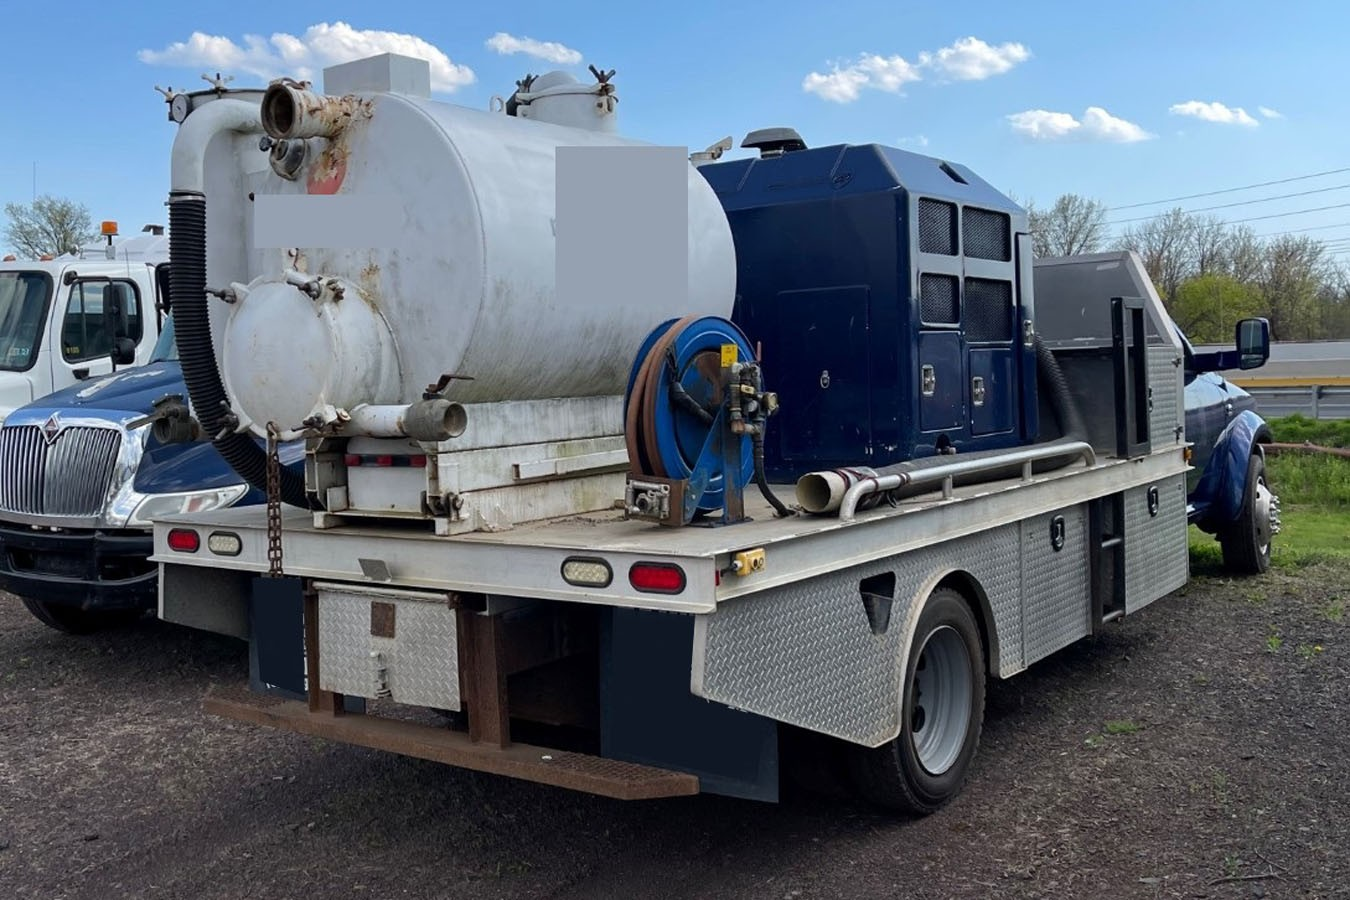 Used, 2012, Other, DODGE RAM 5500 W/ VACMASTER VNDS1000 VACUUM EXCAVATOR, Other